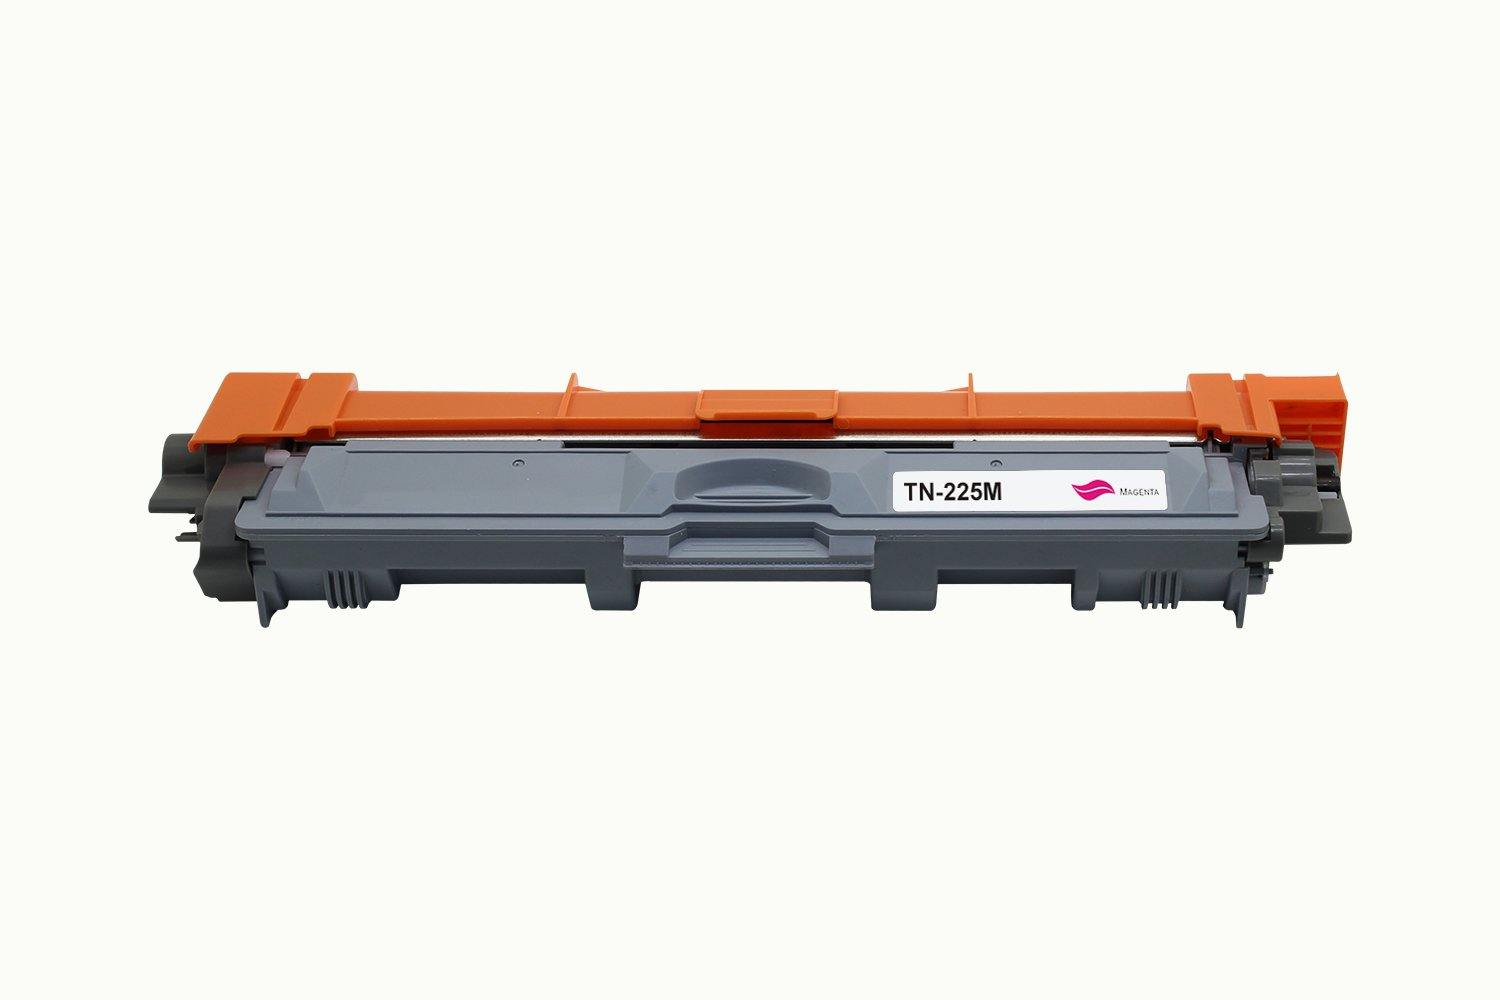 TN225 Magenta Toner Cartridge compatible with the Brother TN-225M